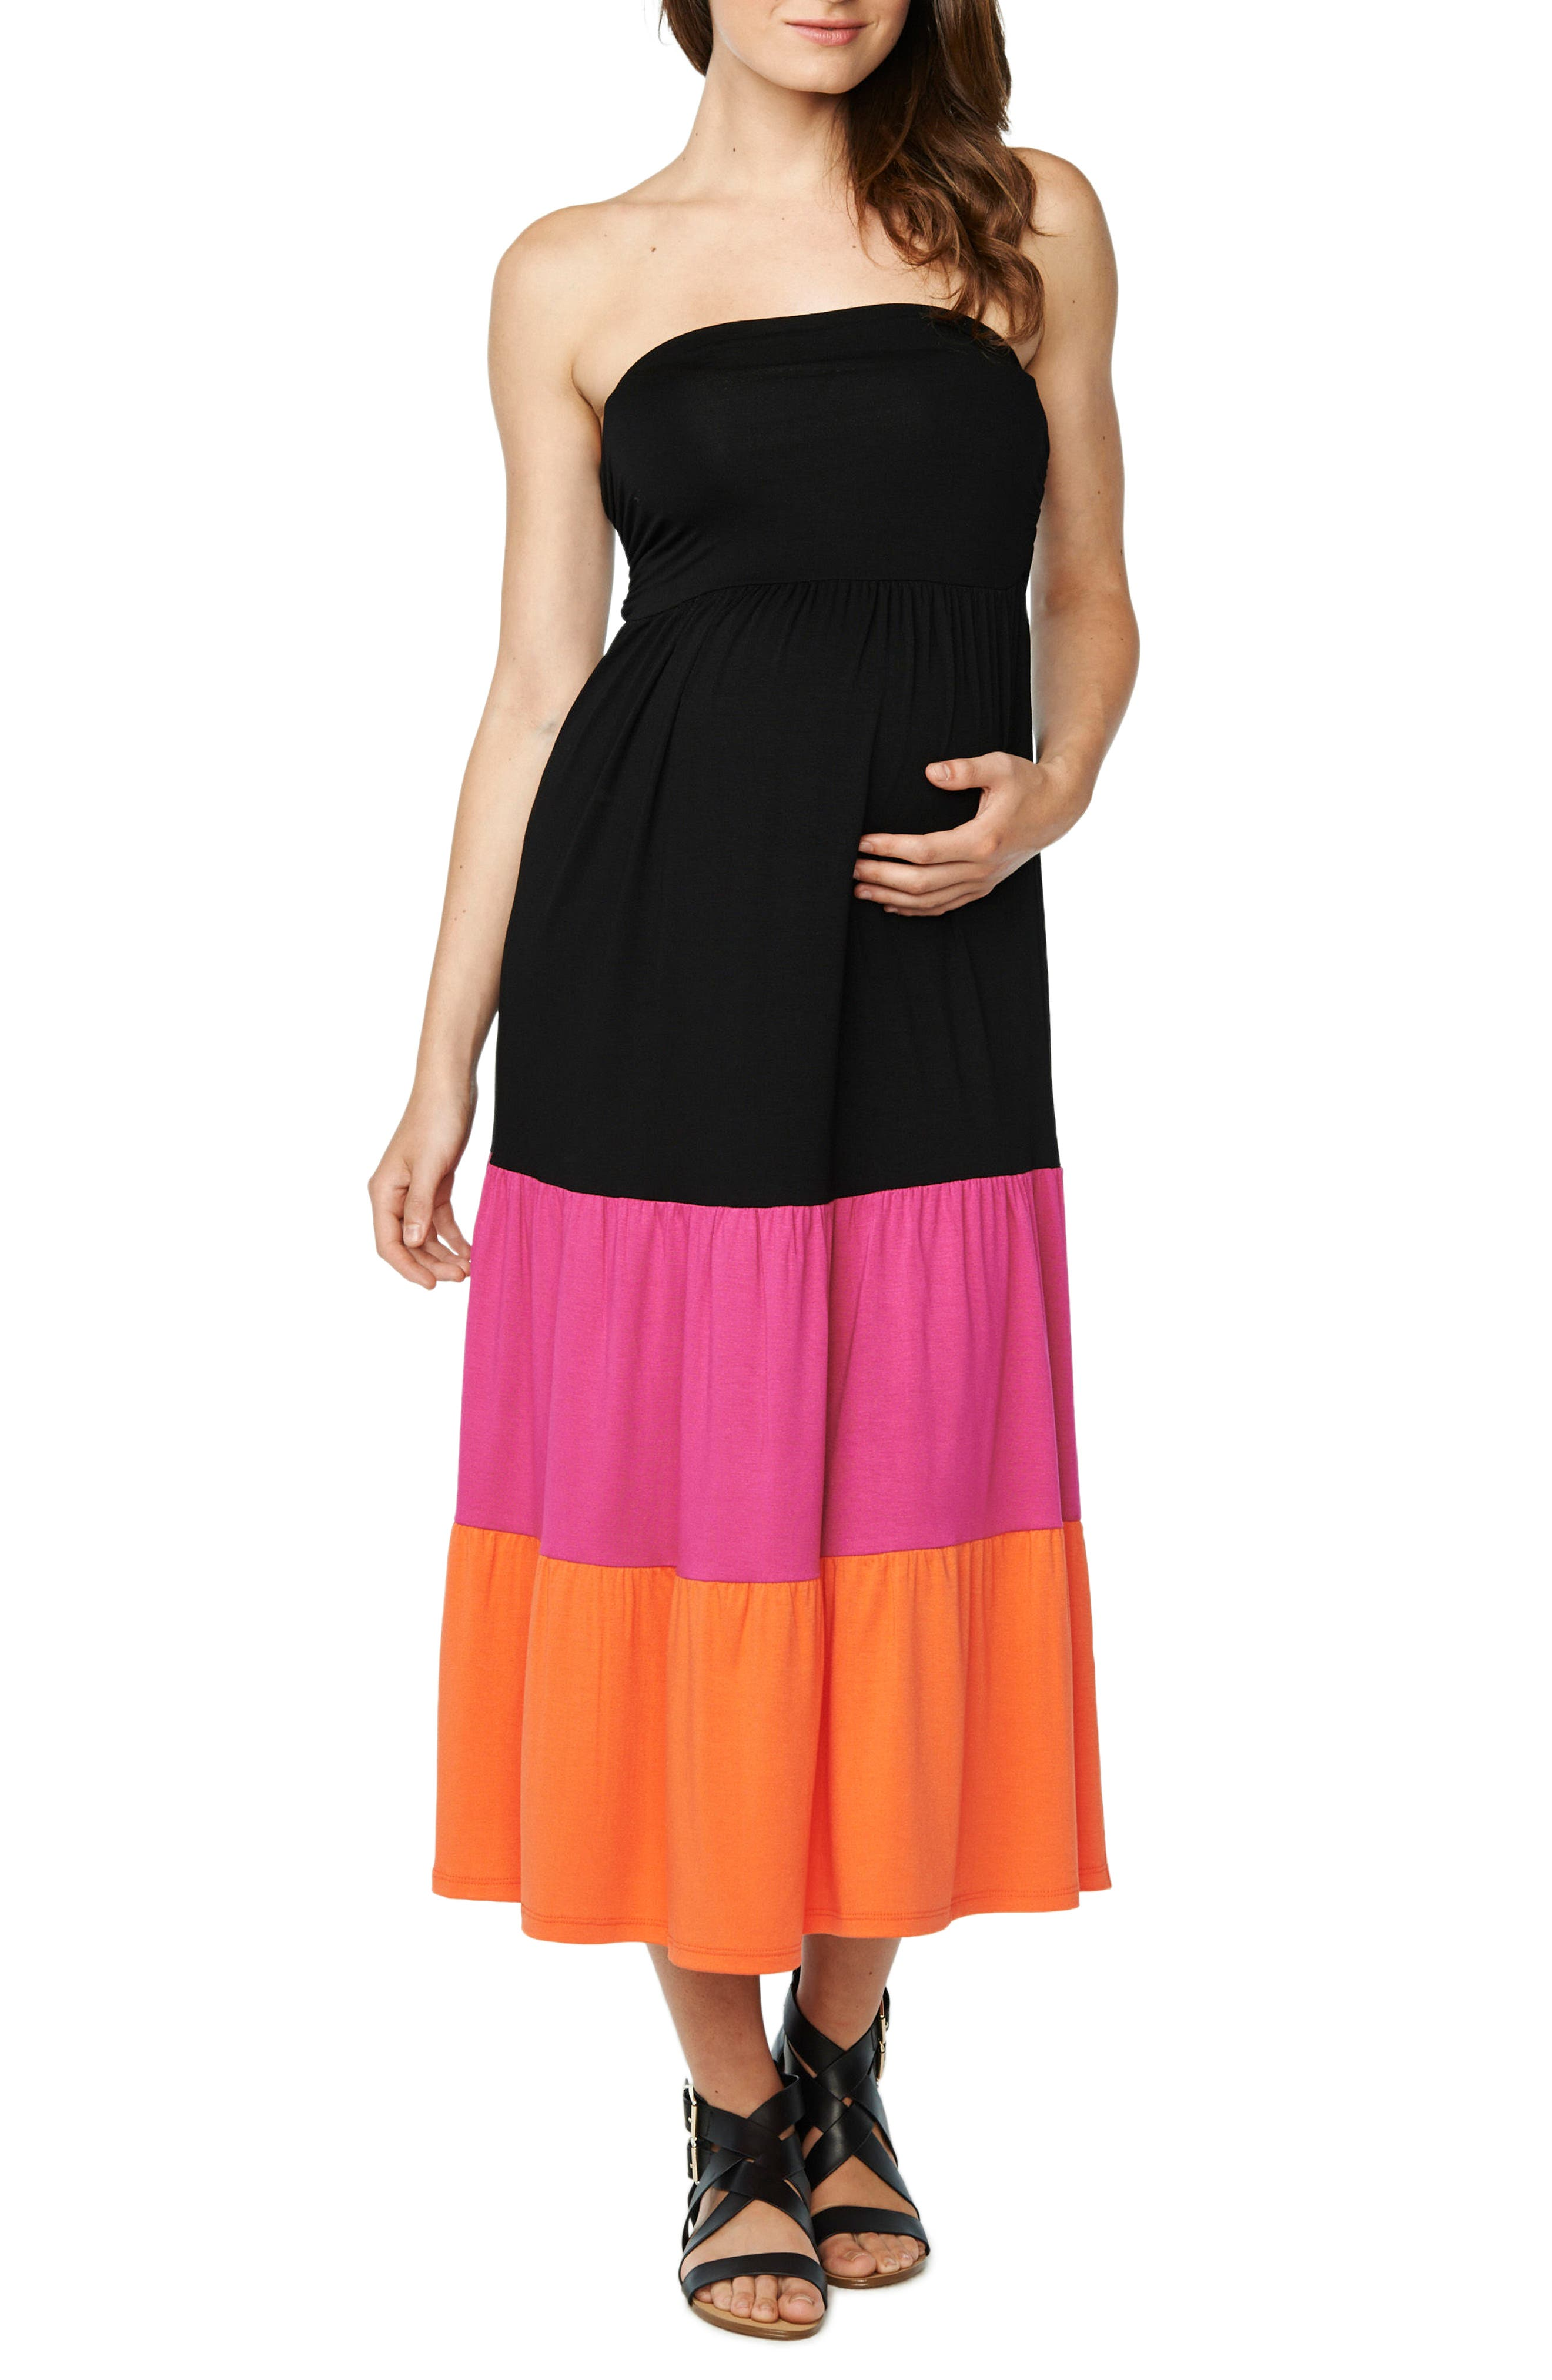 Maternal America Convertible Strapless Maternity Dress